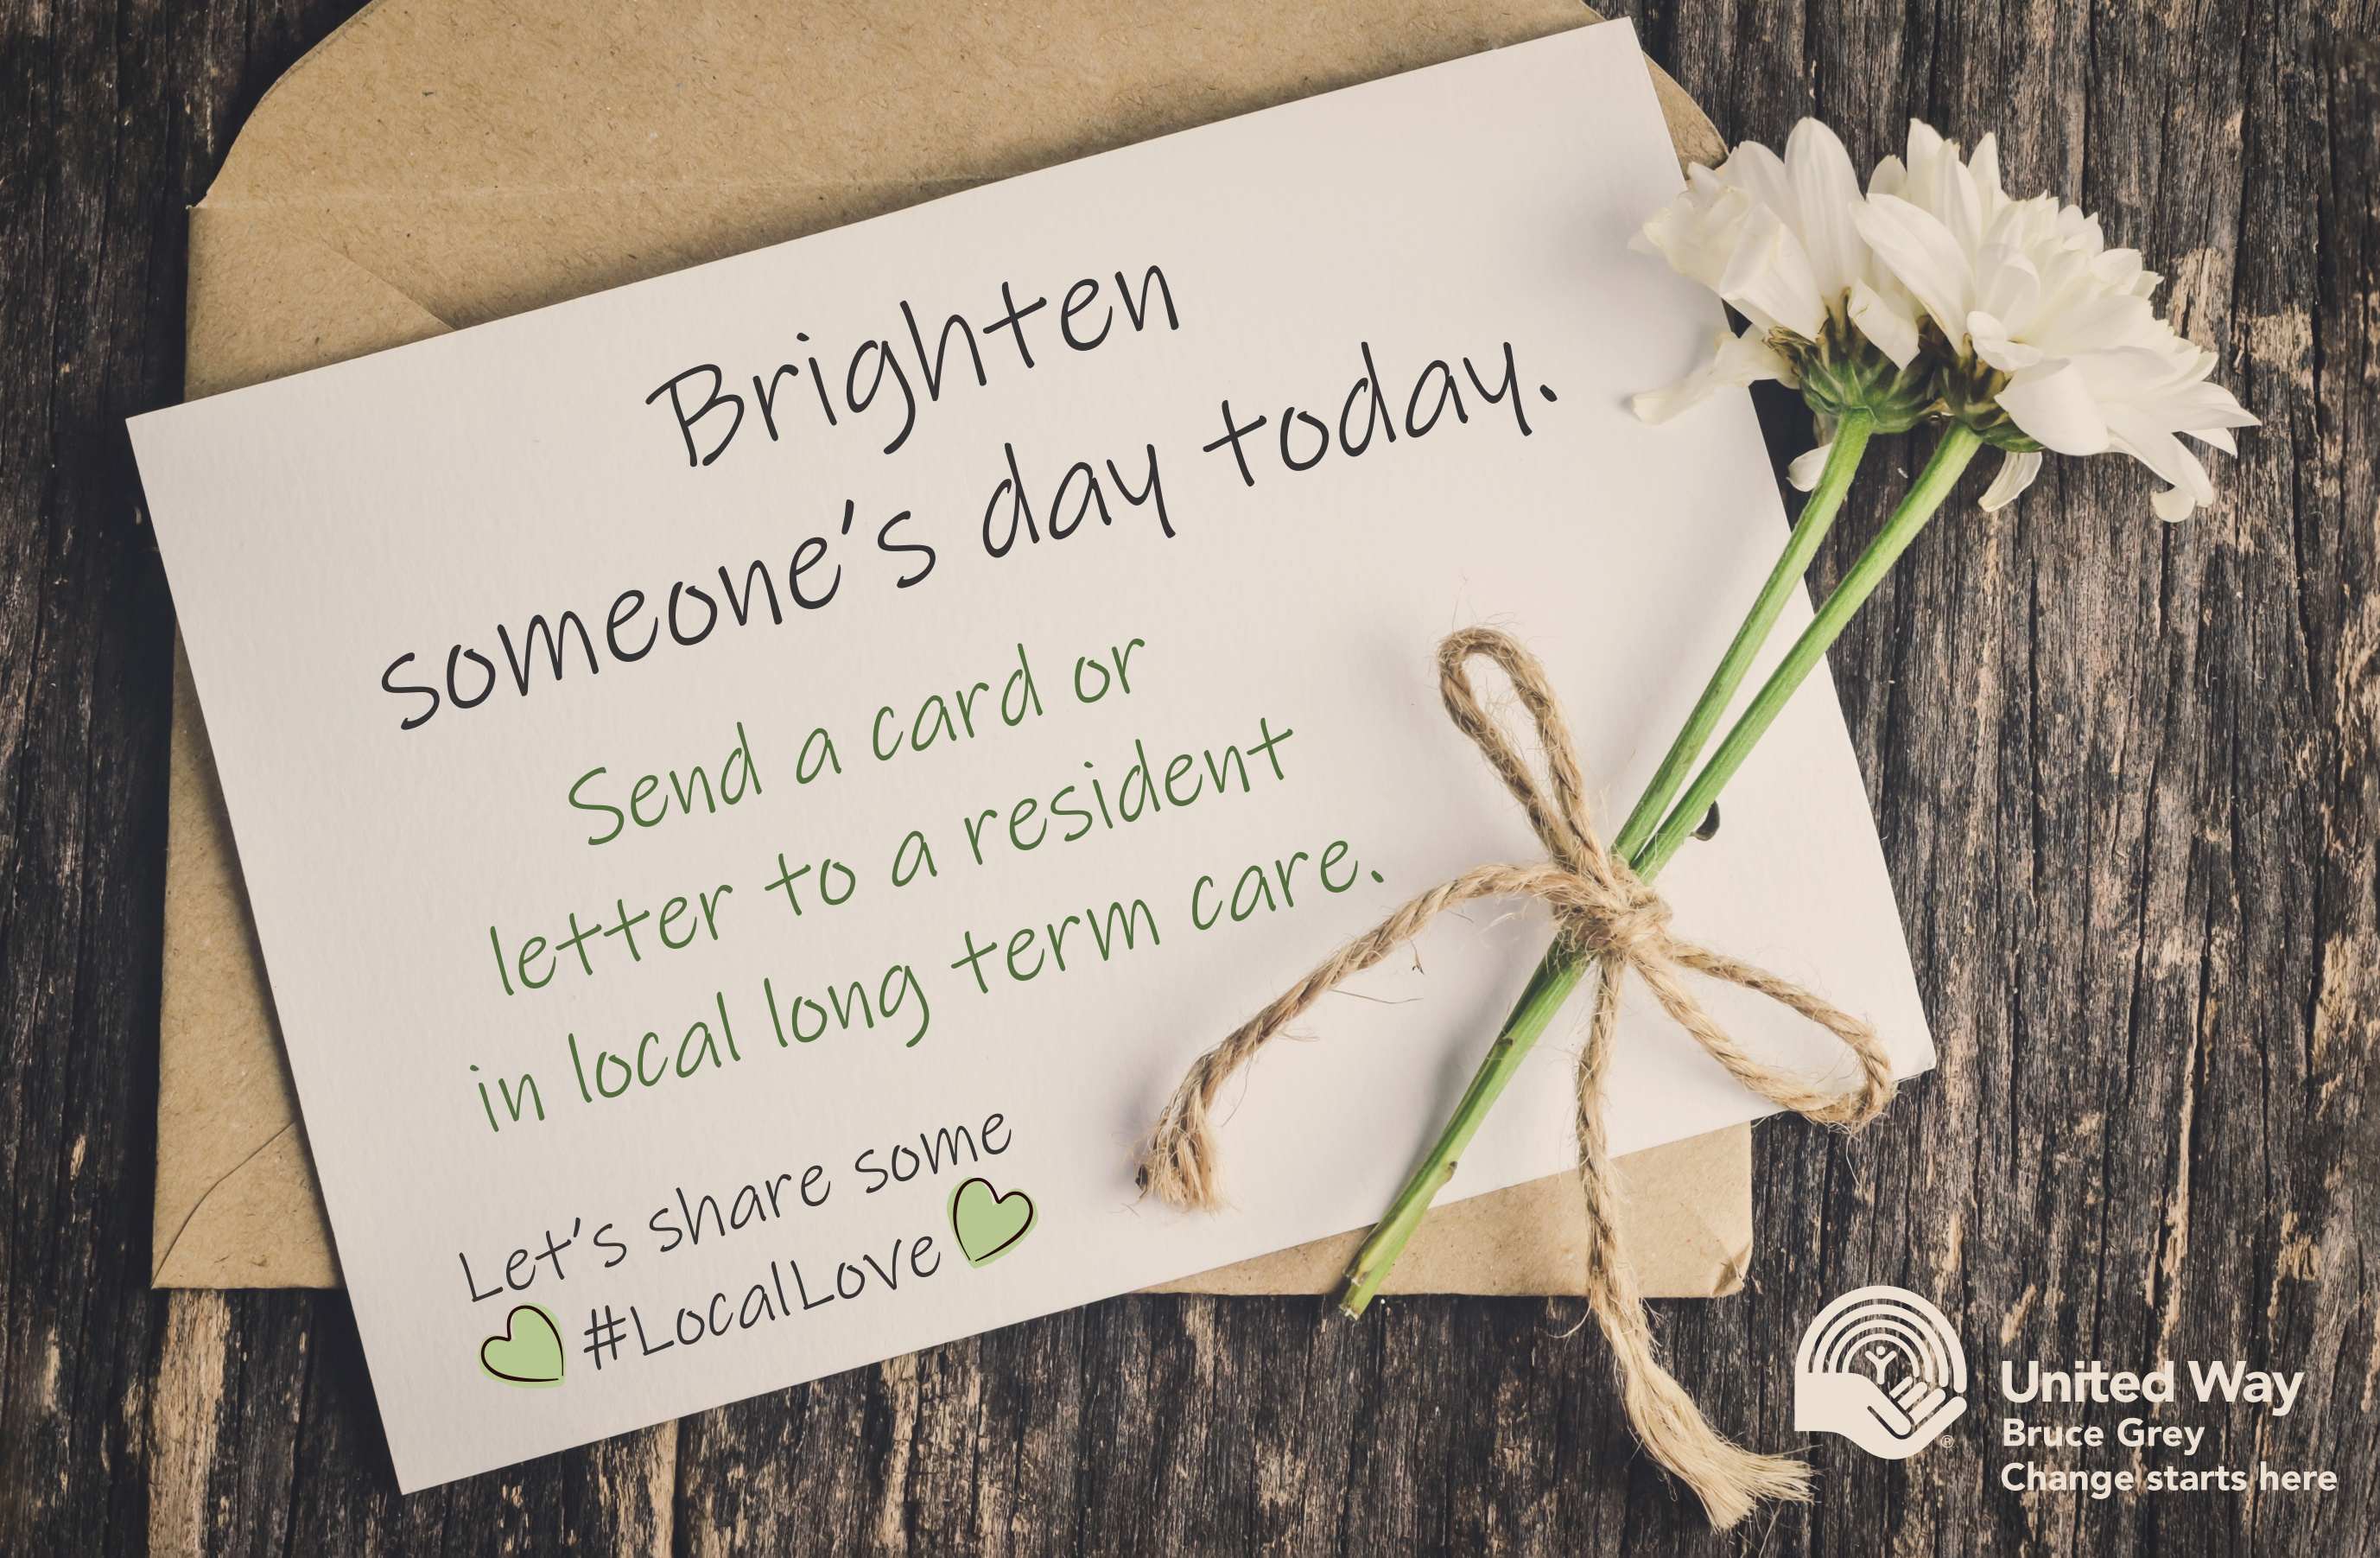 Brighten someone's day today. Send a card or letter to someone in long term care.